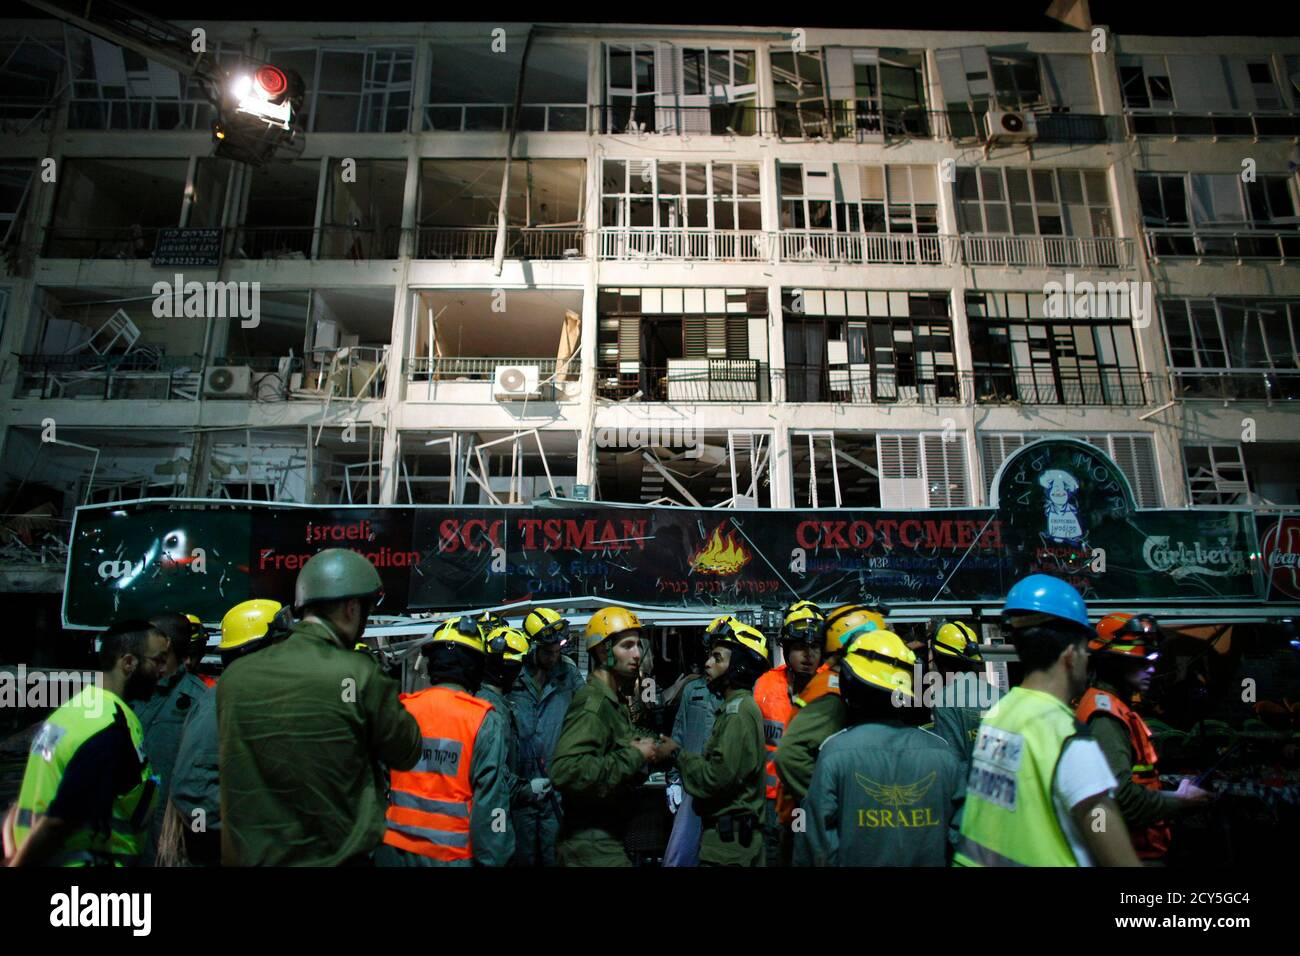 Rescue workers gather next to a damaged building at the scene of an explosion in the coastal Israeli city of Netanya June 17, 2011. A huge blast caused by a gas leak killed three people in Netanya early on Friday, police said. At least 15 other people were injured in the explosion, which caused the first floor of a four-story residential building to collapse. Local media said earlier that many people were trapped, but emergency services said everyone had been removed from the building. REUTERS/Nir Elias (ISRAEL - Tags: DISASTER) Stock Photo